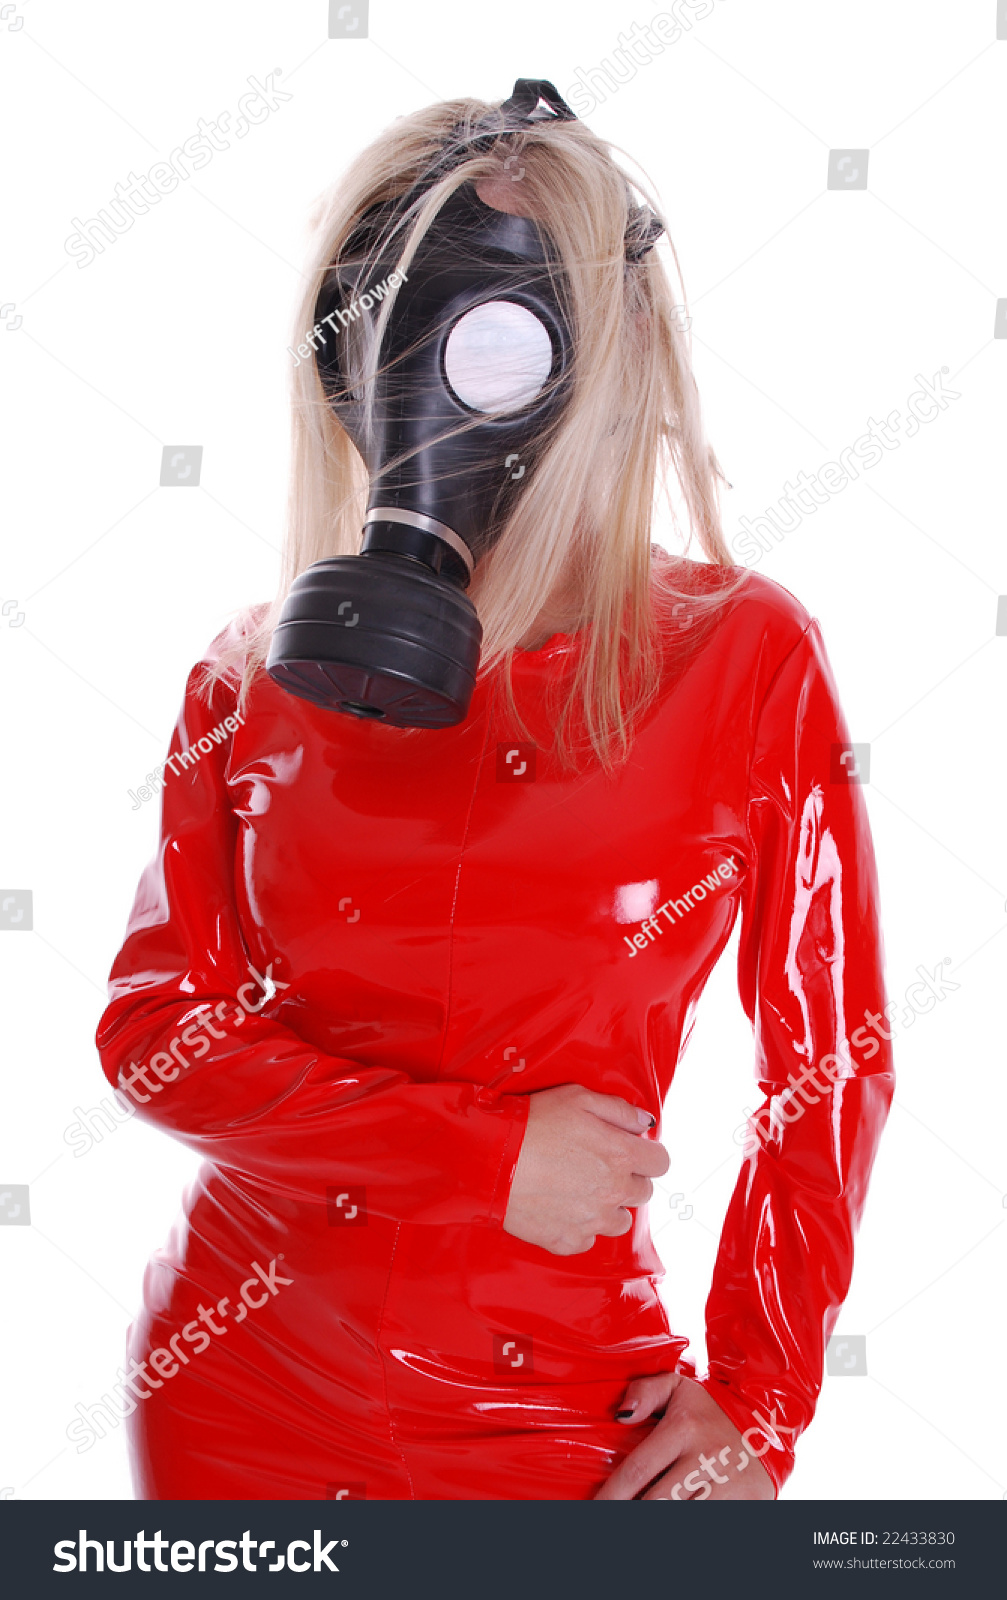 Woman Gas Mask Tight Red Suit Stock Photo 22433830